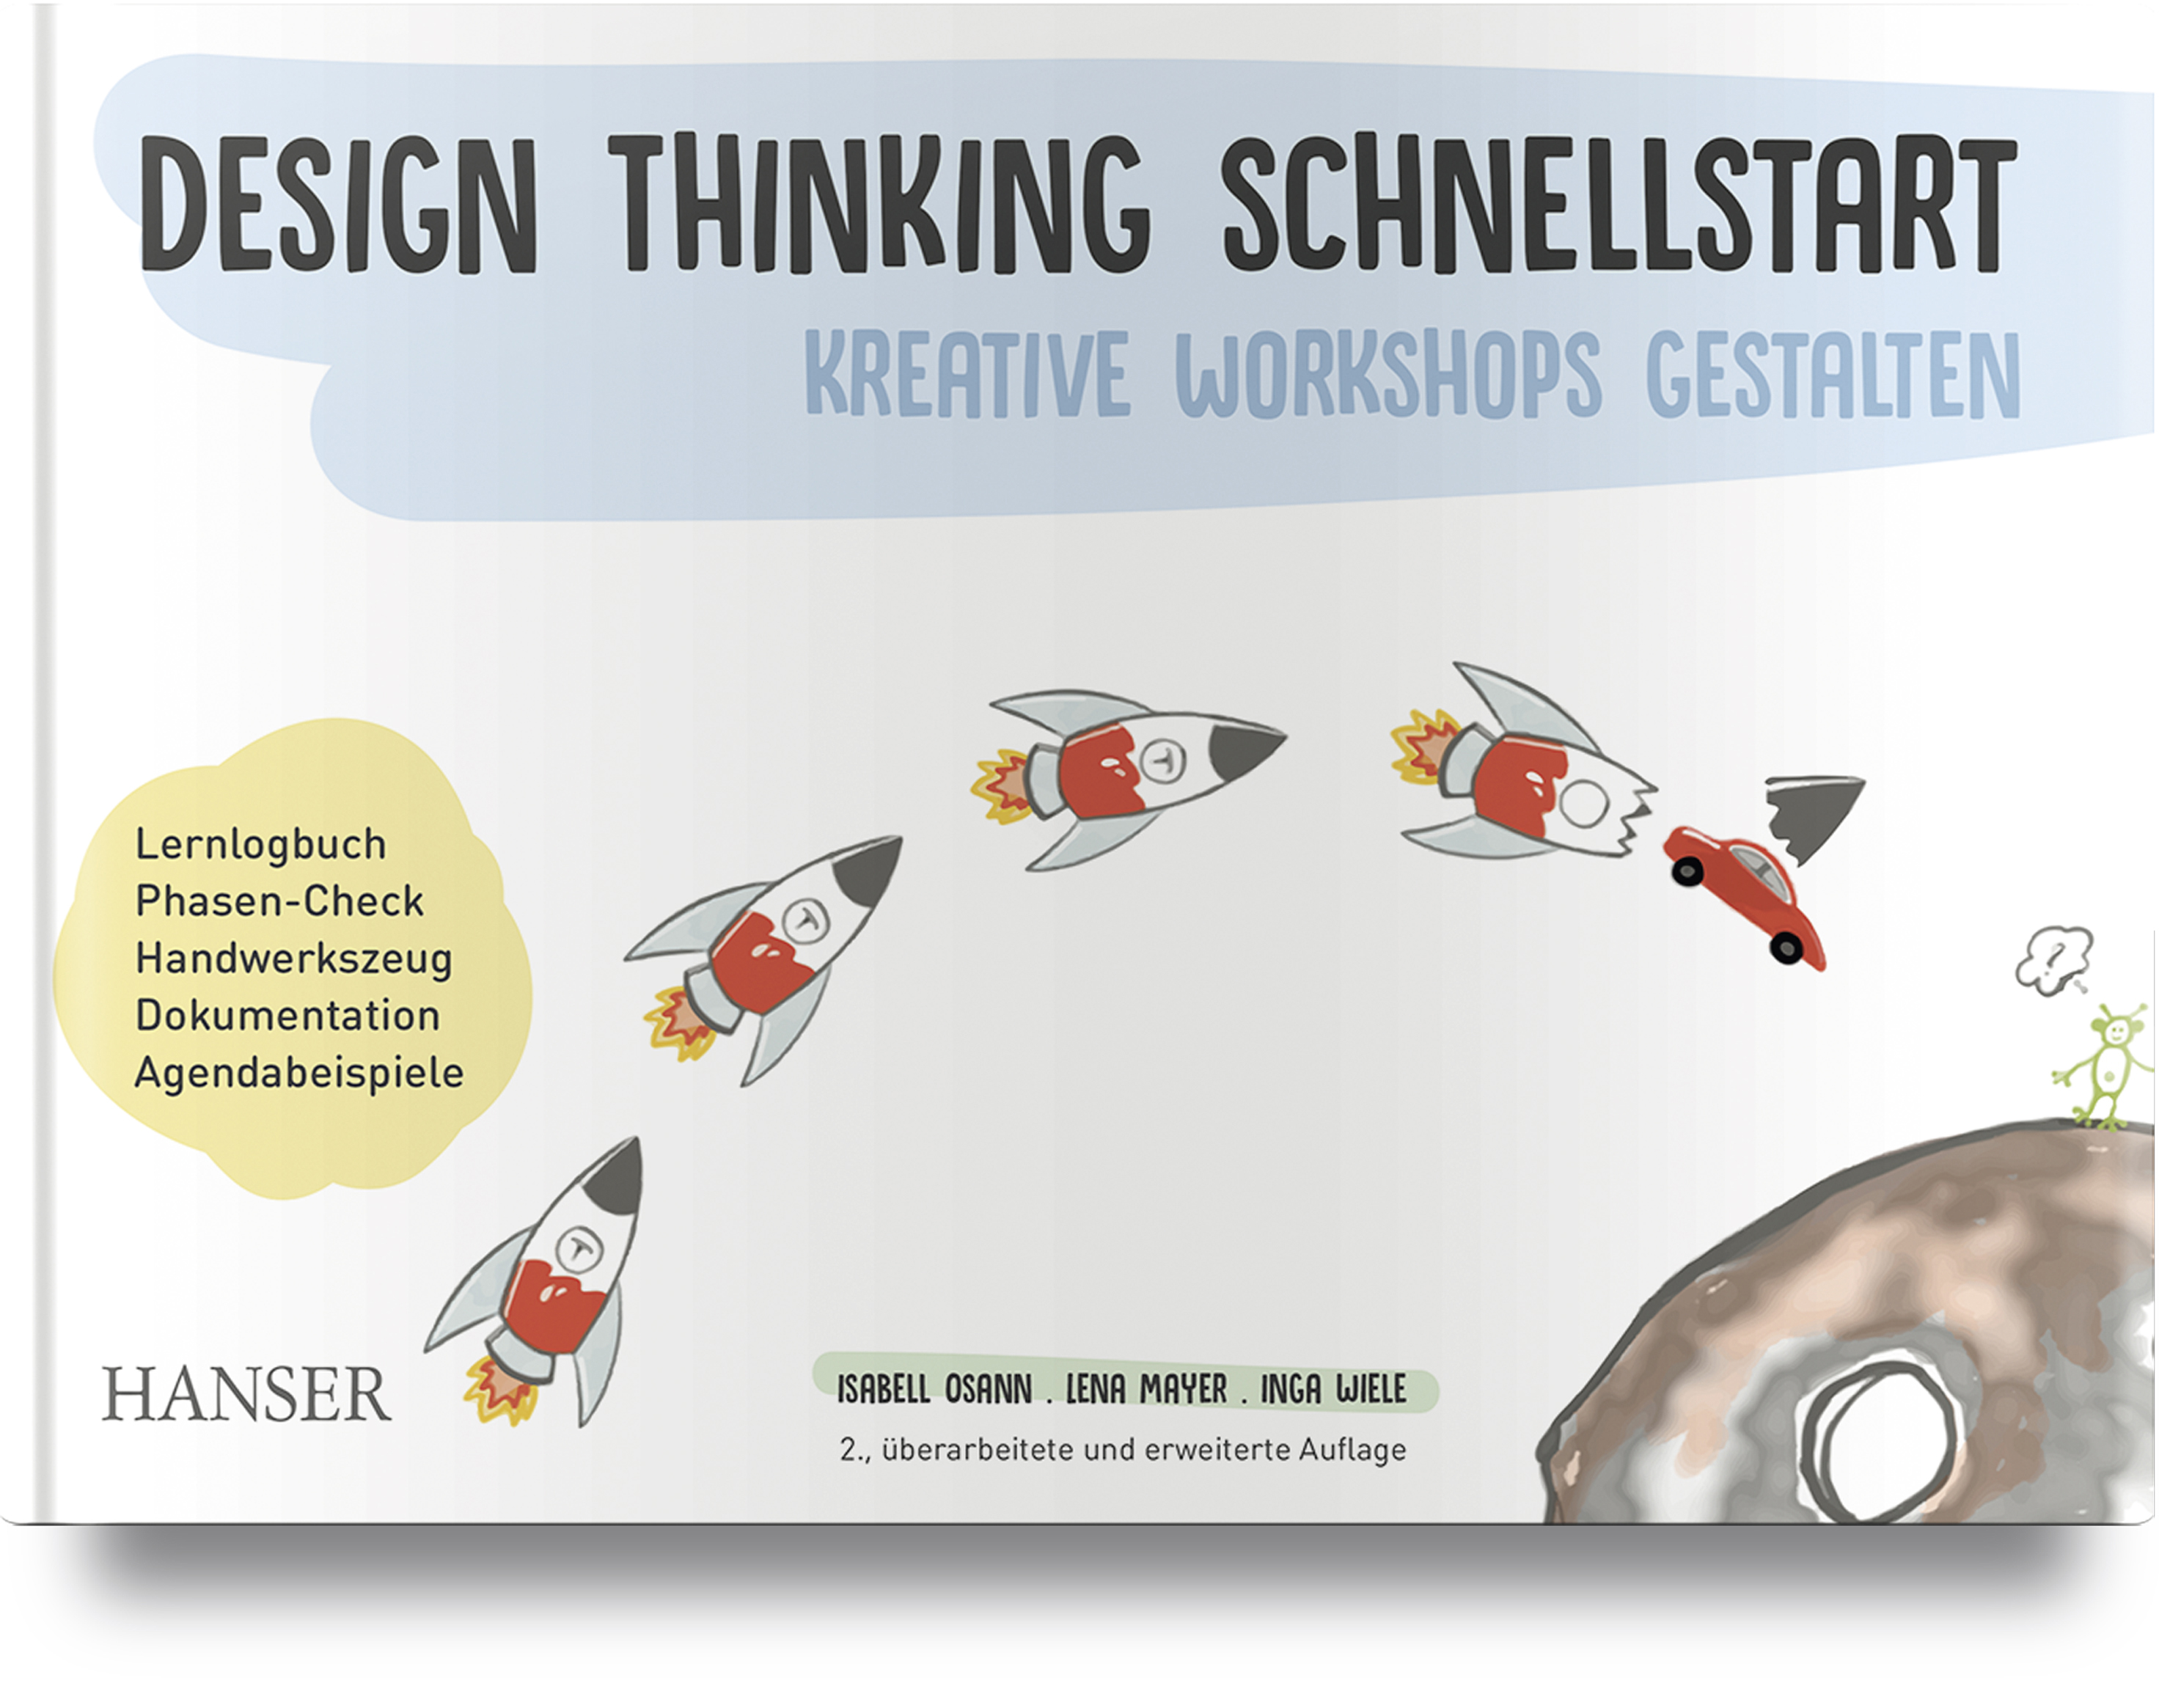 Osann, Mayer, Wiele, Design Thinking Schnellstart, 978-3-446-46225-0